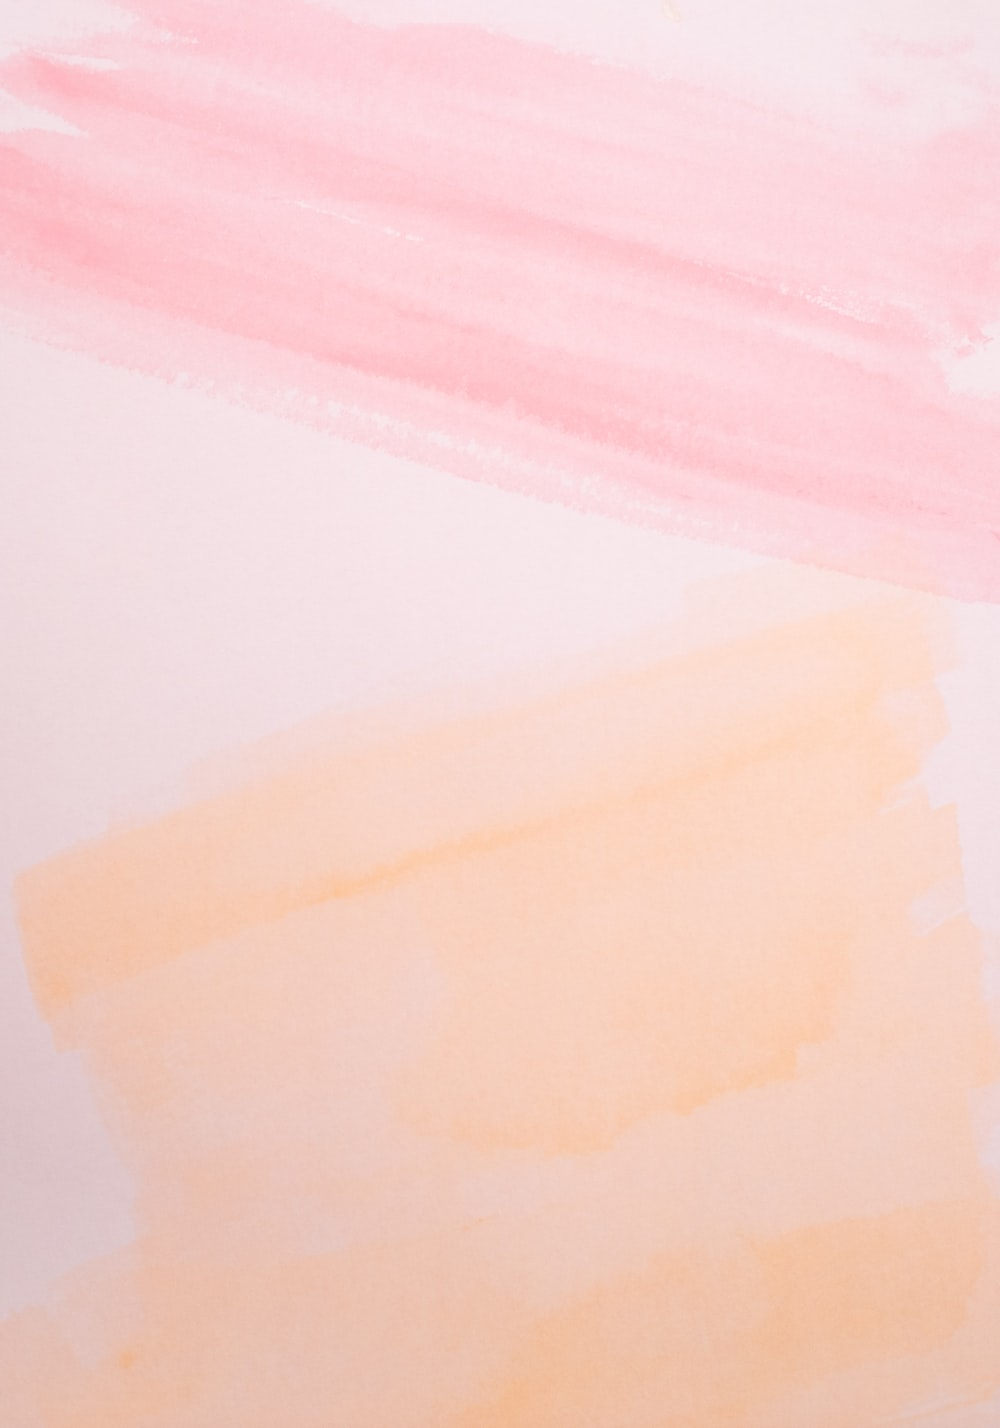 pink and orange paints